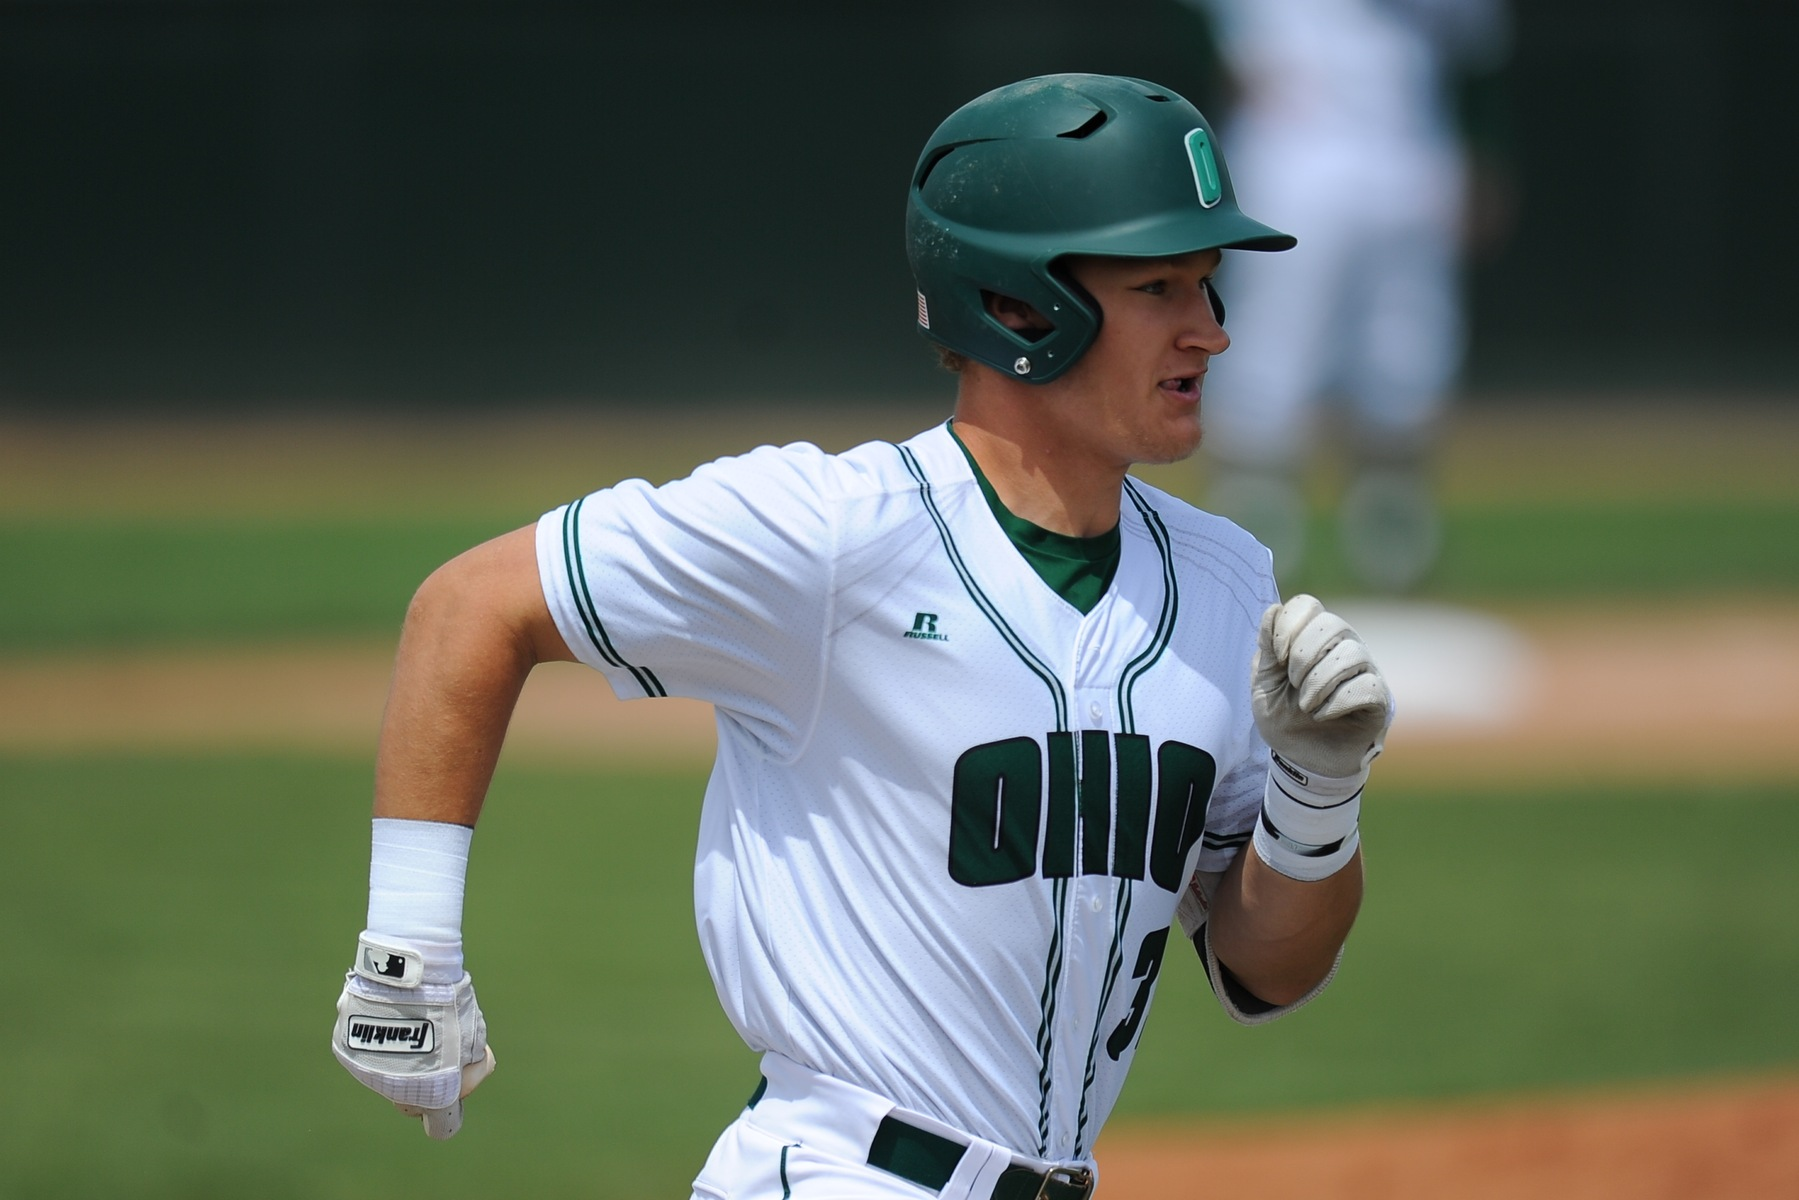 Ohio Baseball To Play At High Point On Wednesday